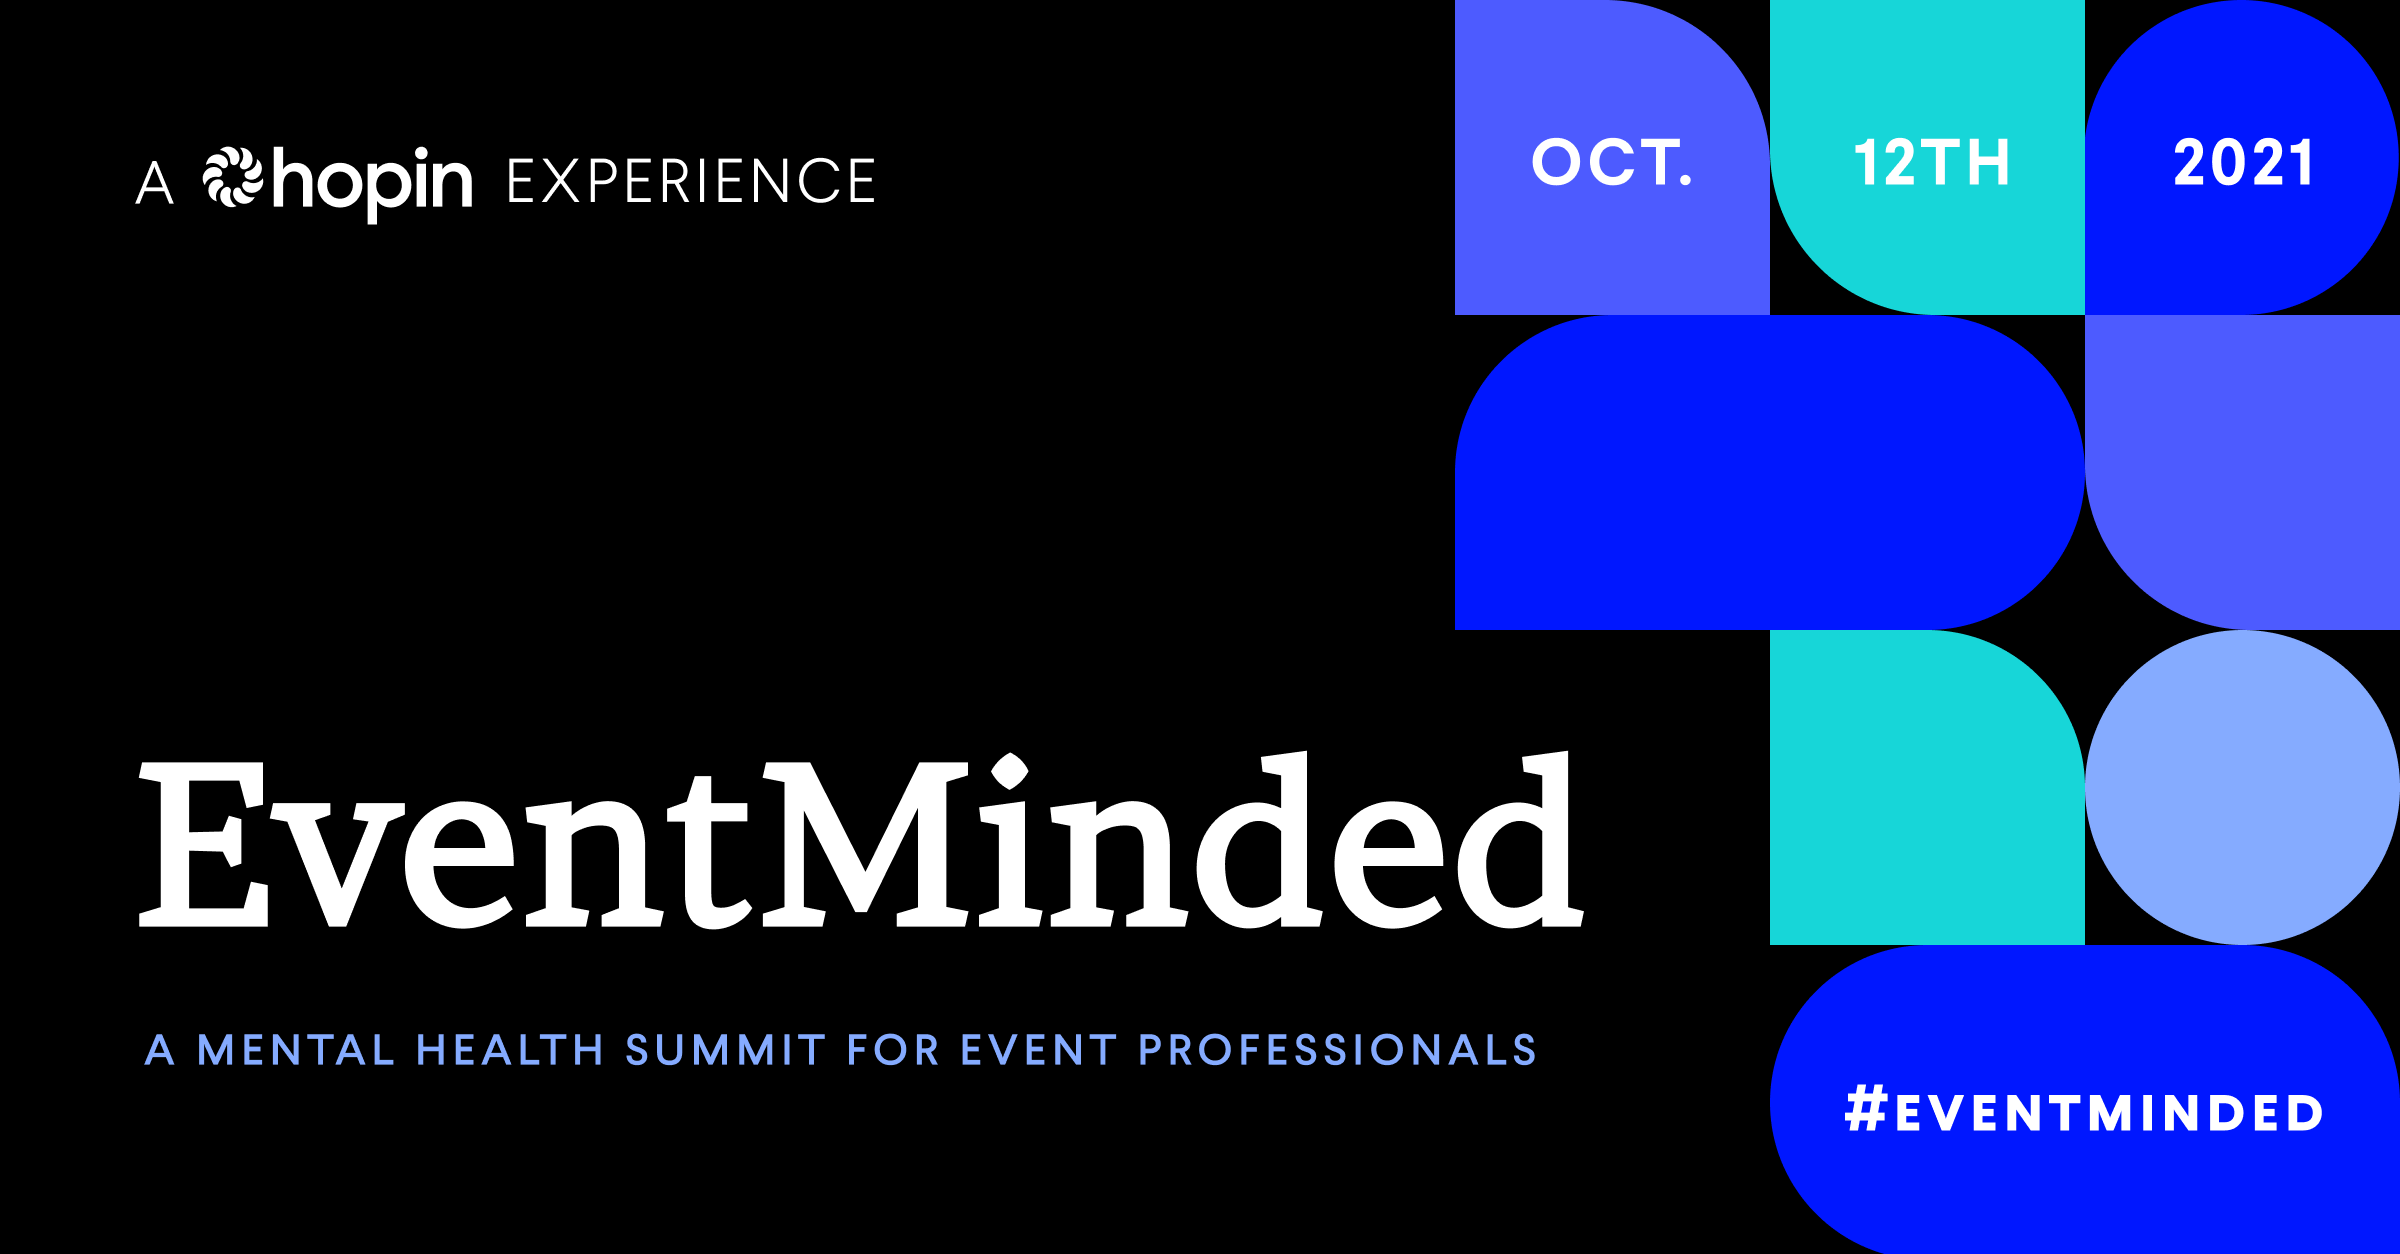 Join prominent voices in mental health and organizational psychology, including Simone Biles and Adam Grant, for a first-of-its-kind summit around mental health for event professionals.